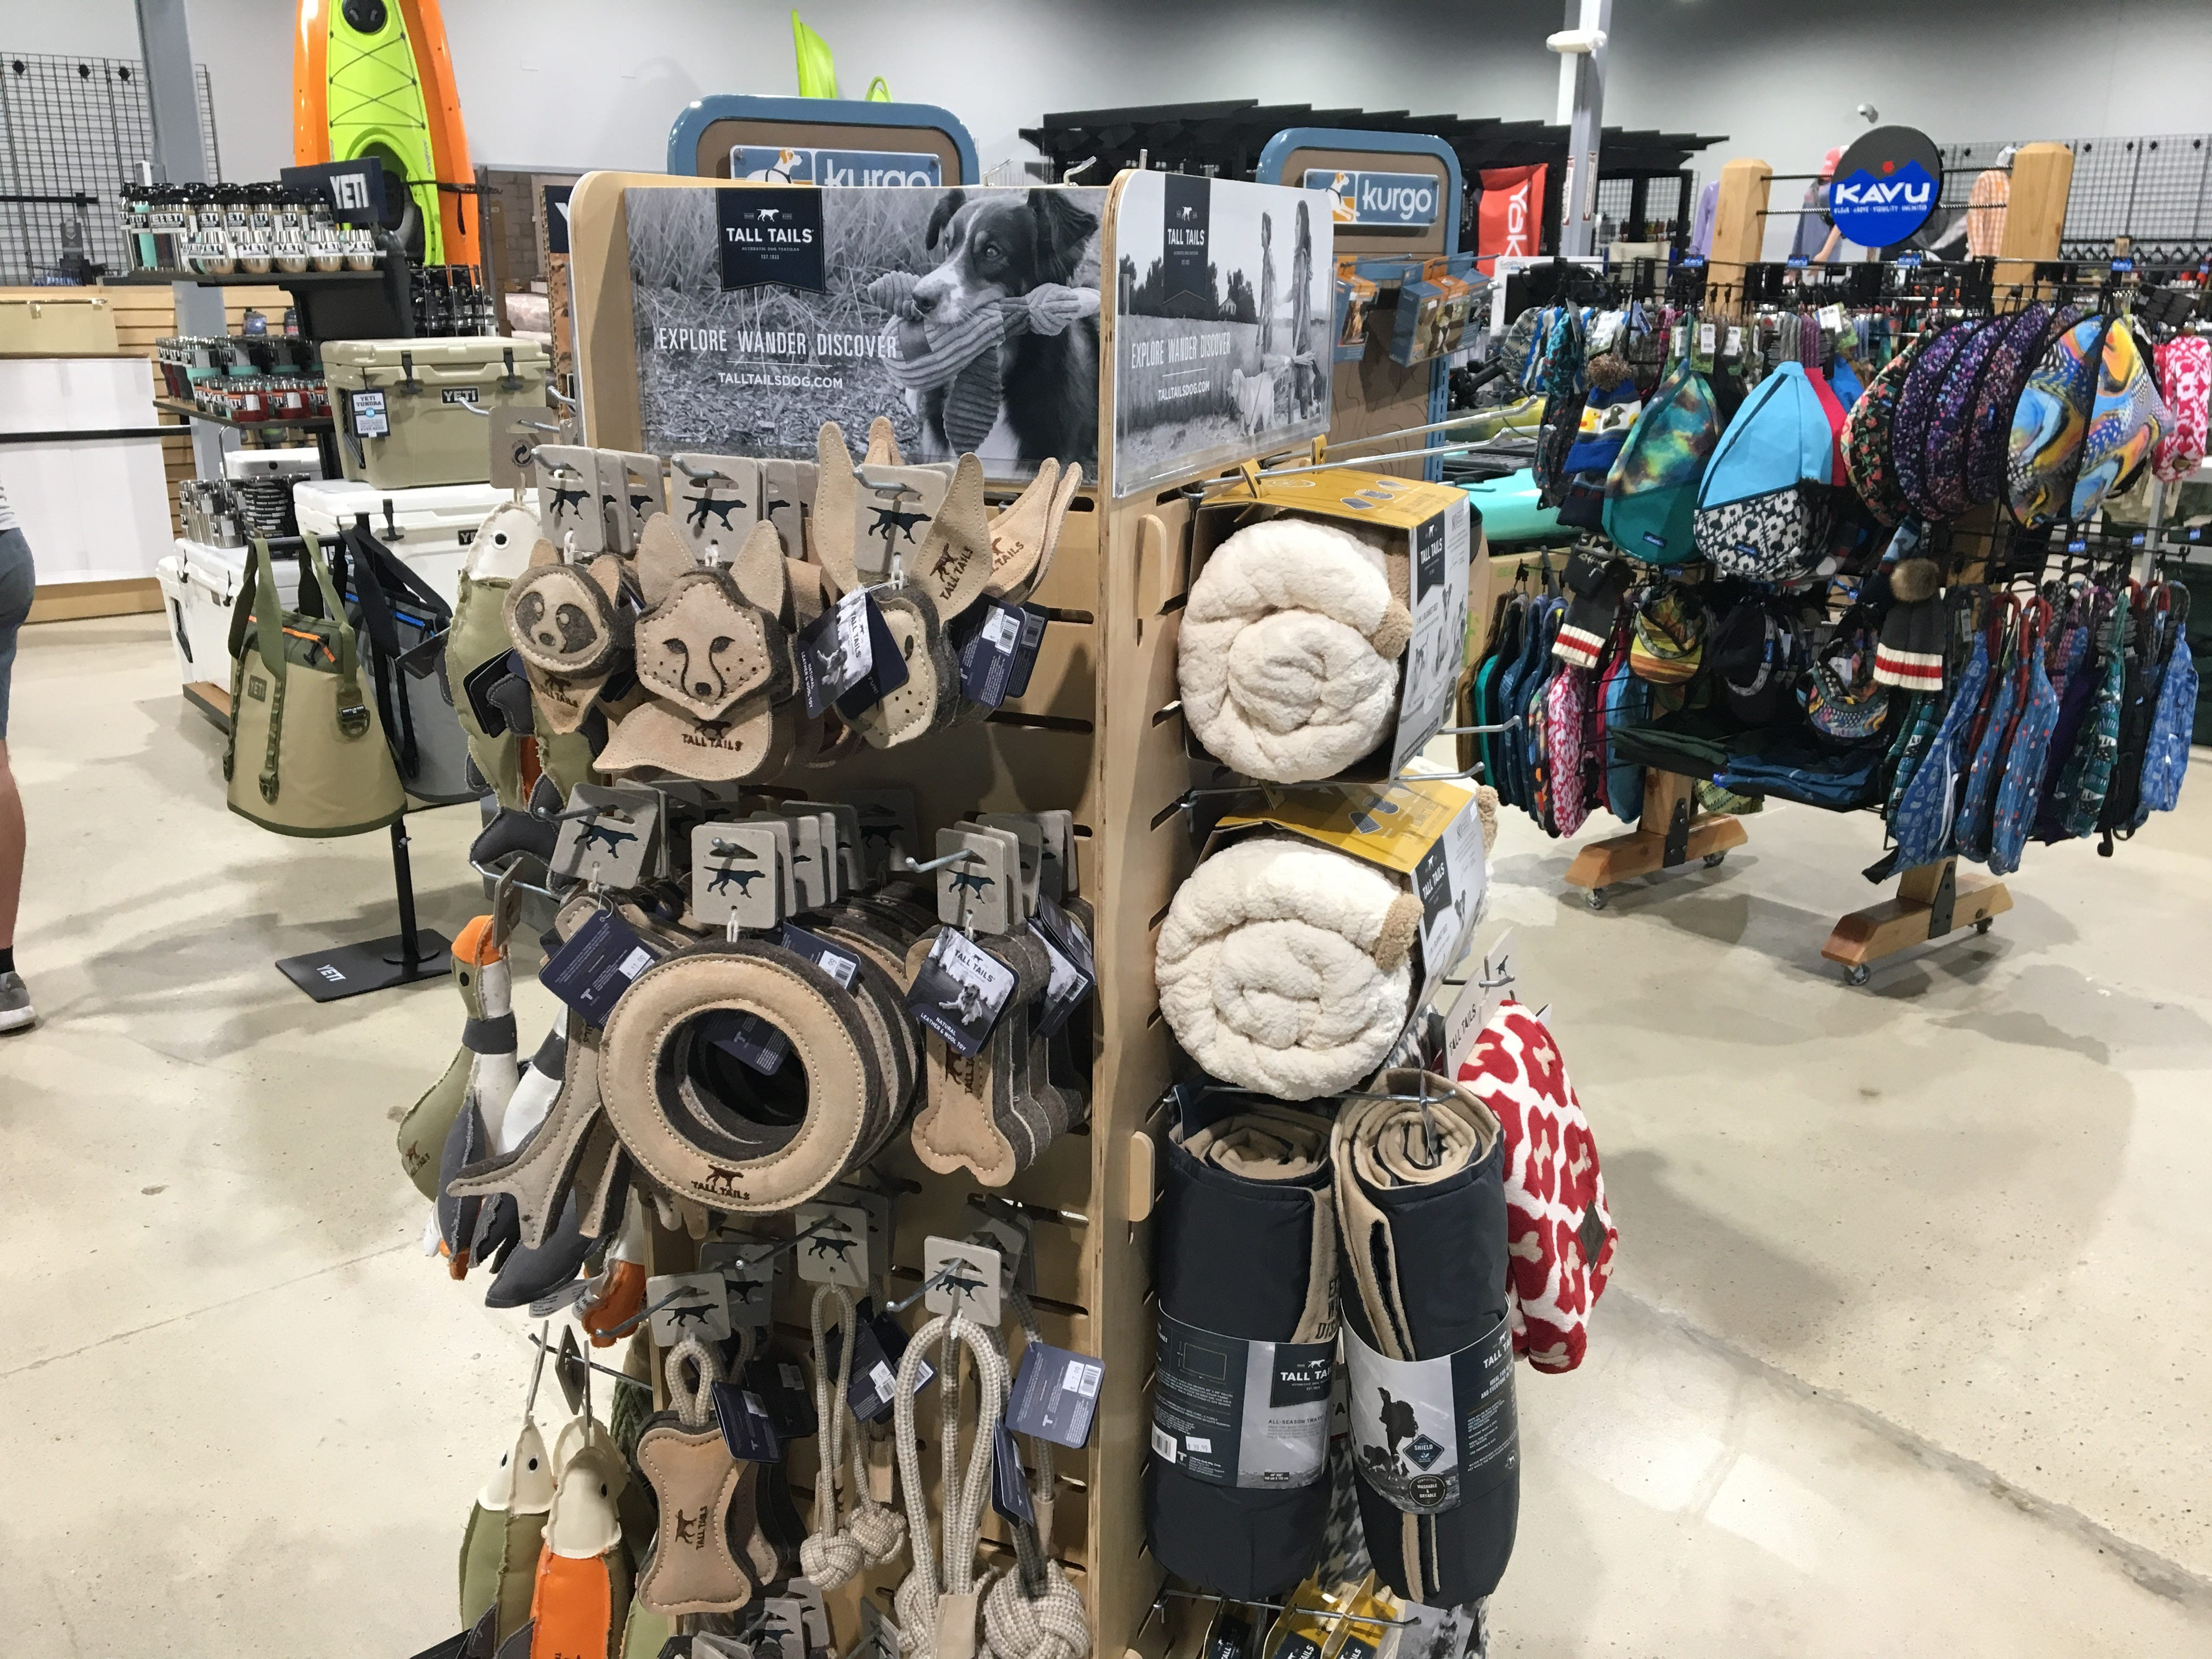 Hook 1 outfitters in Murfreesboro sells outdoor gear for canines.